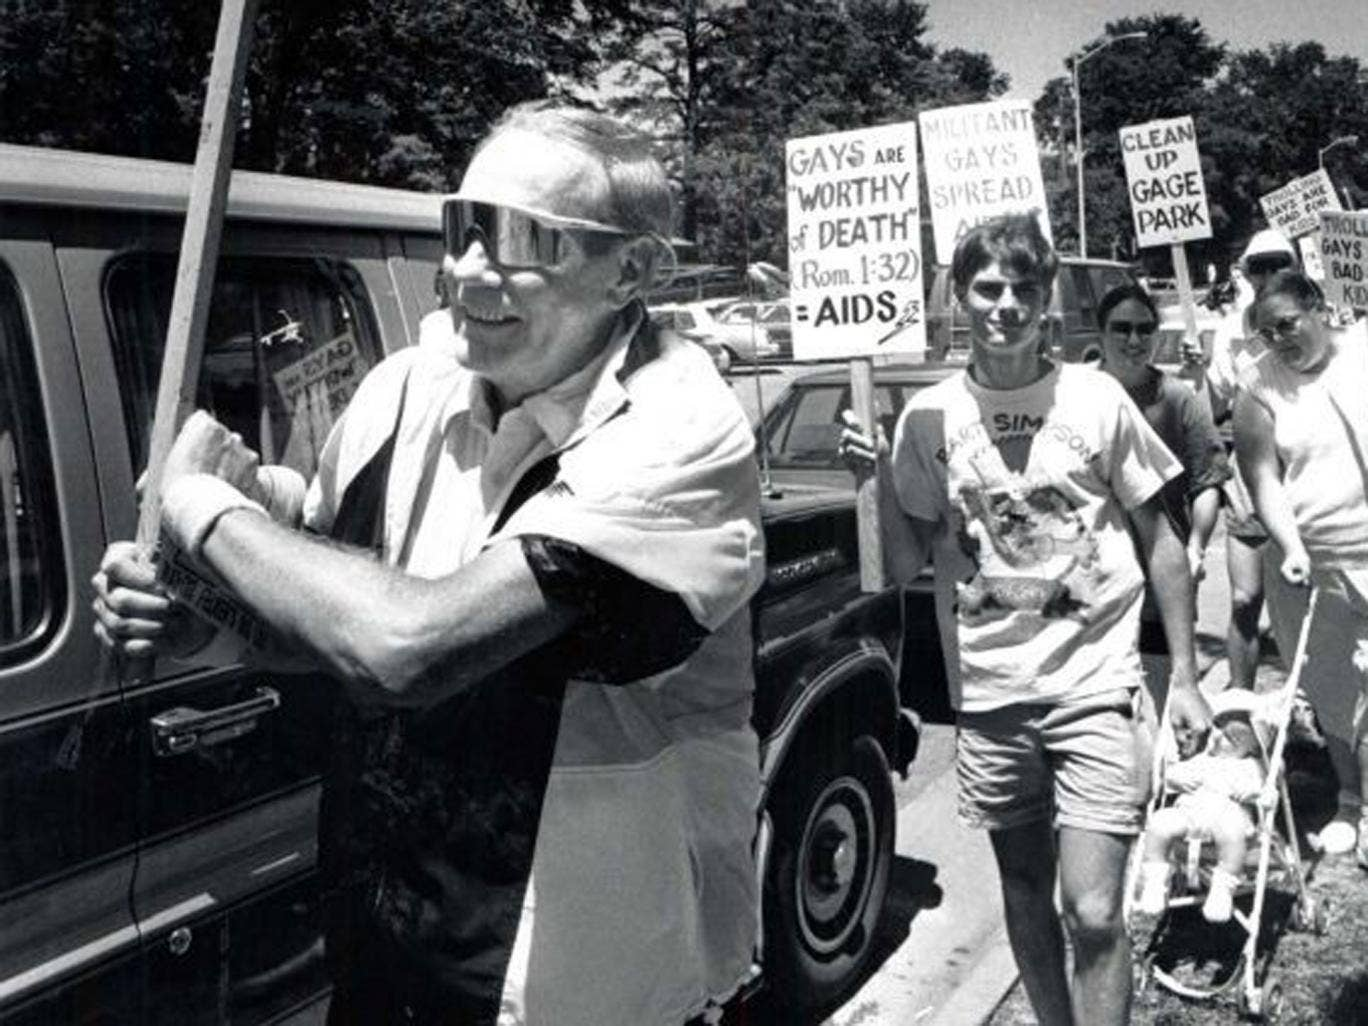 Phelps and members of his Westboro church stage a protest in Topeka, Kansas in 1991